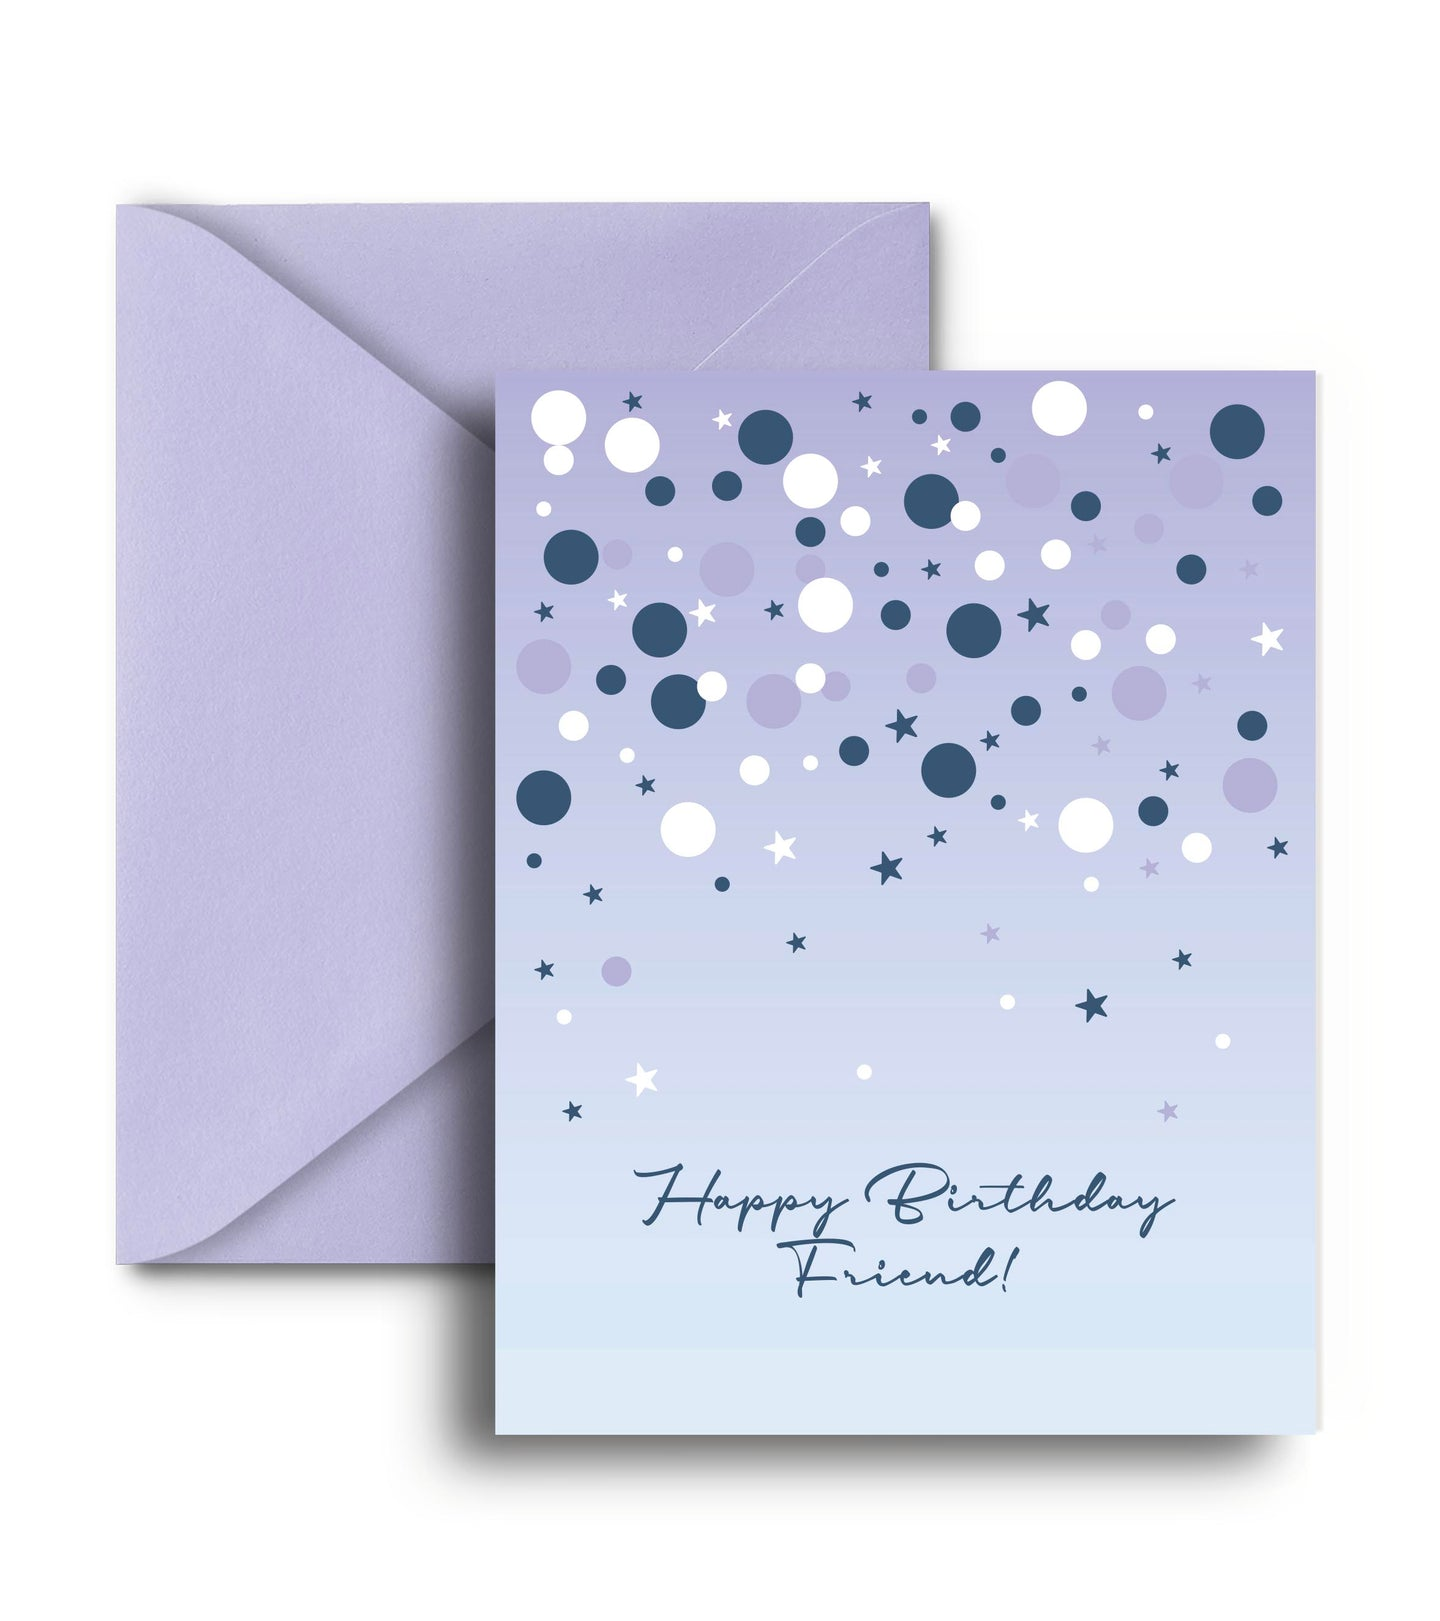 Happy Birthday Friend Greeting Card